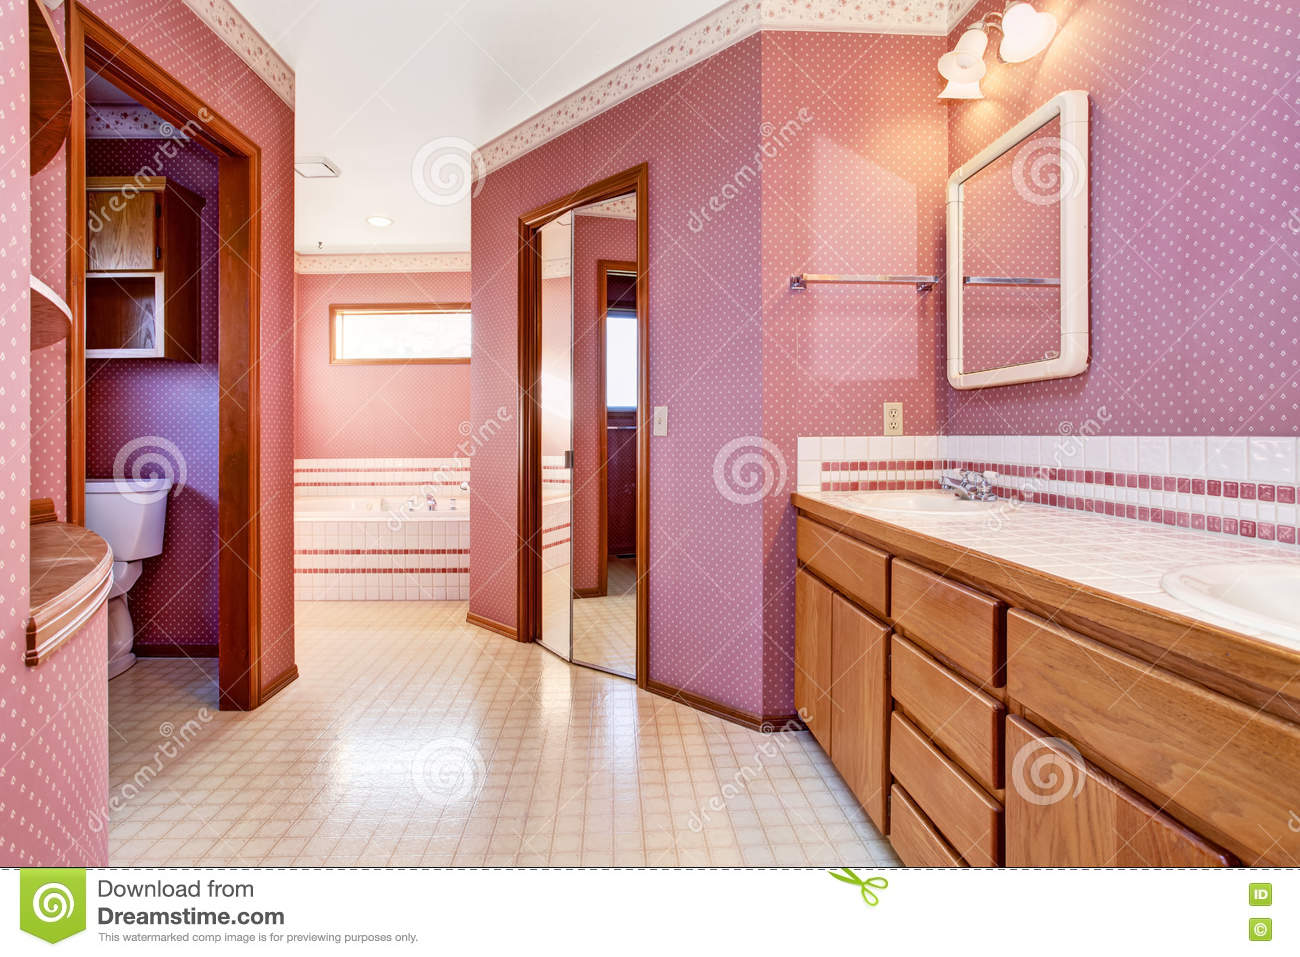 luxury pink bathroom interior design. stock photo - image: 74862995